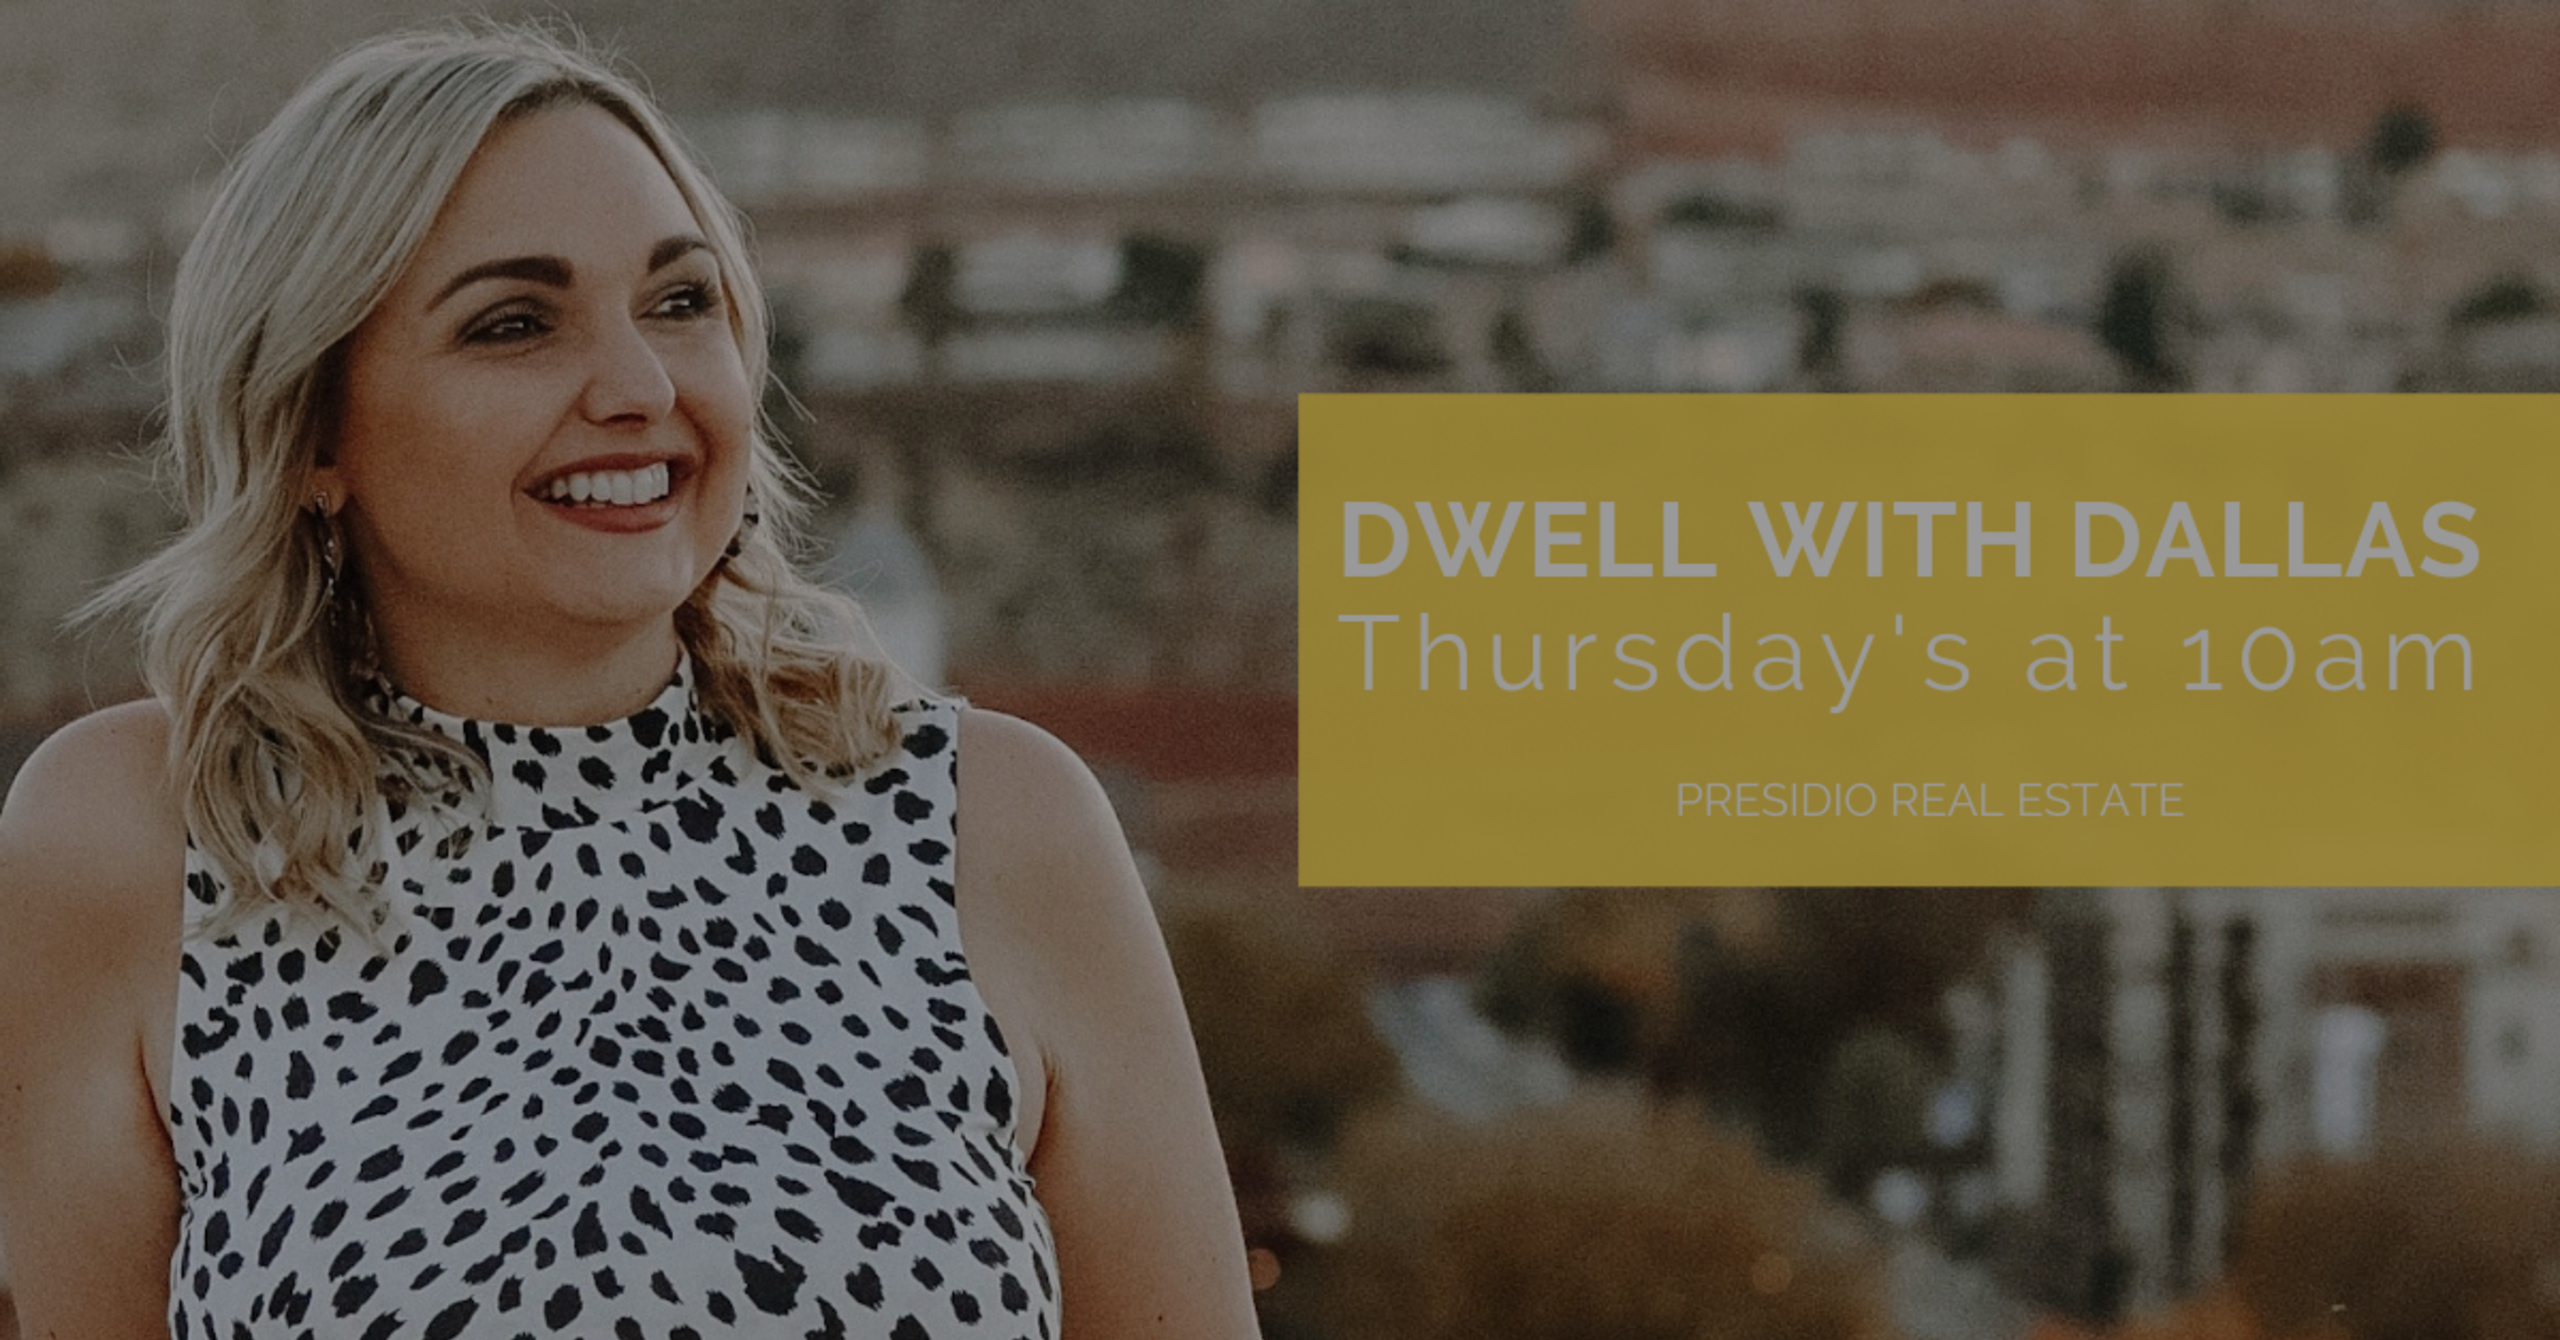 dwell with dallas